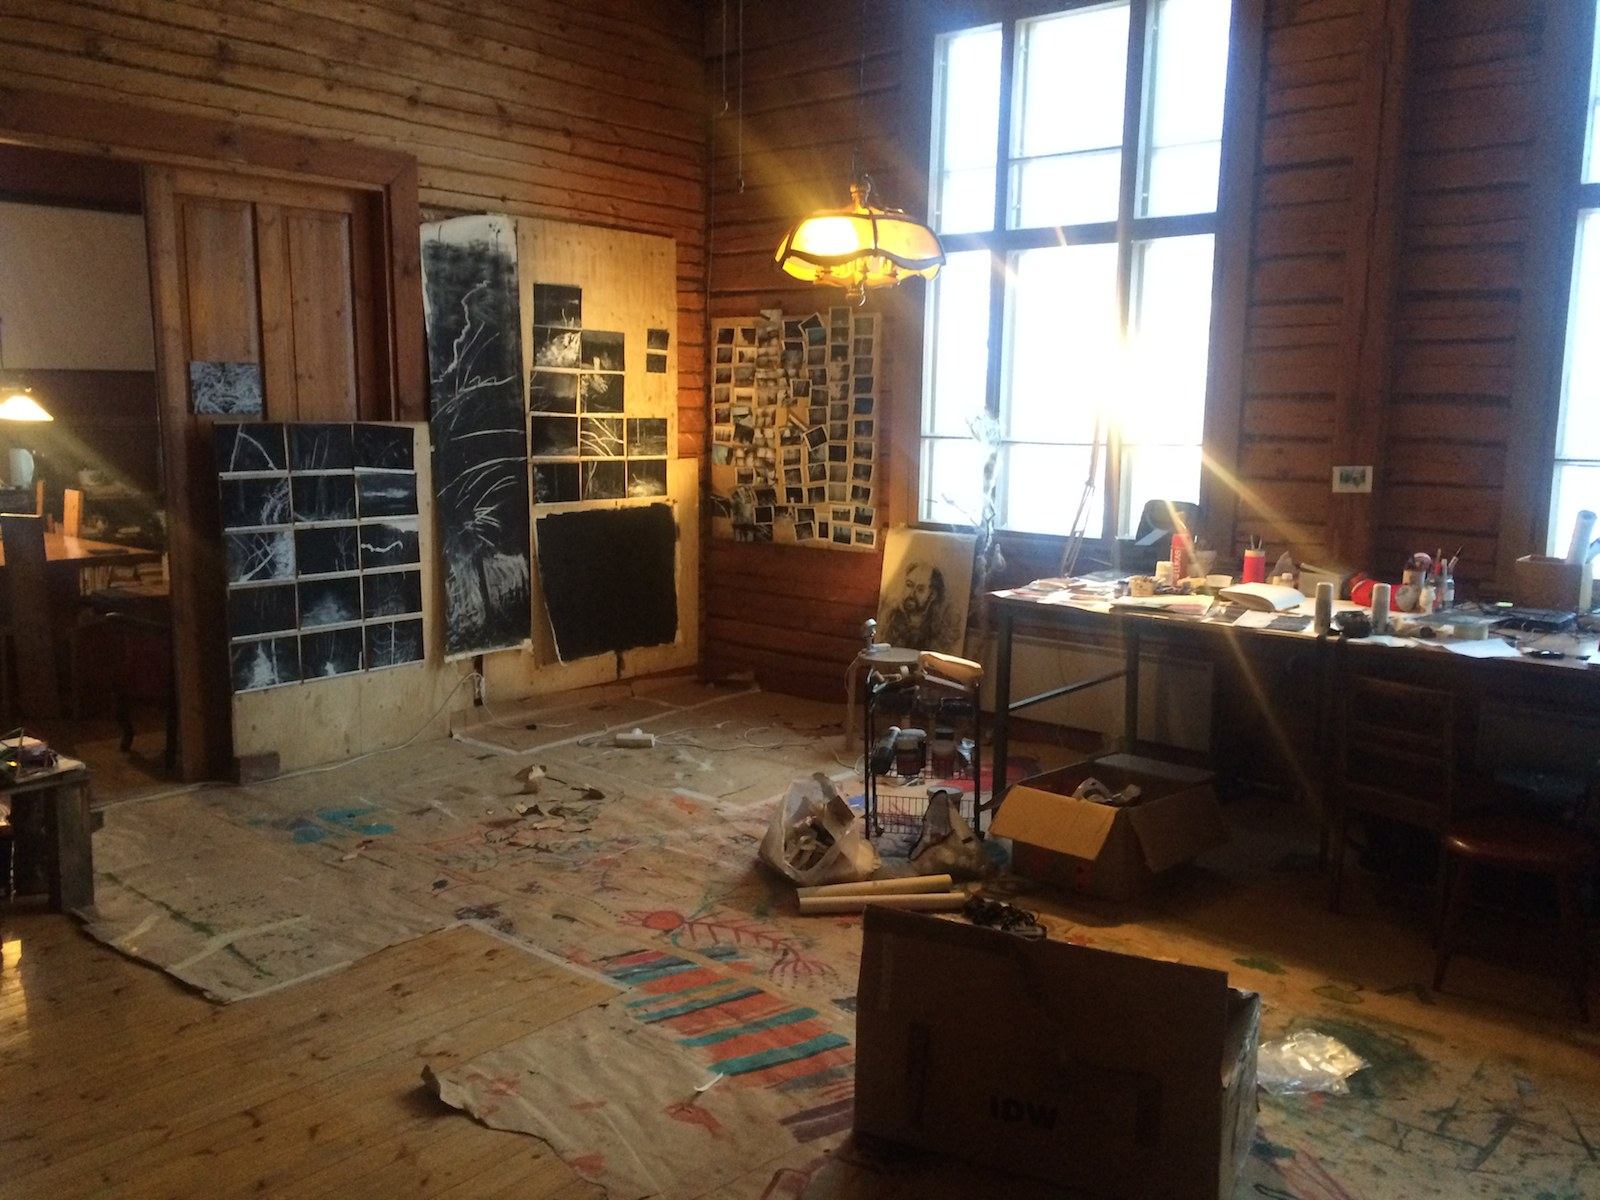 Studio, AiR Rasi637, Finland, Winter 2014